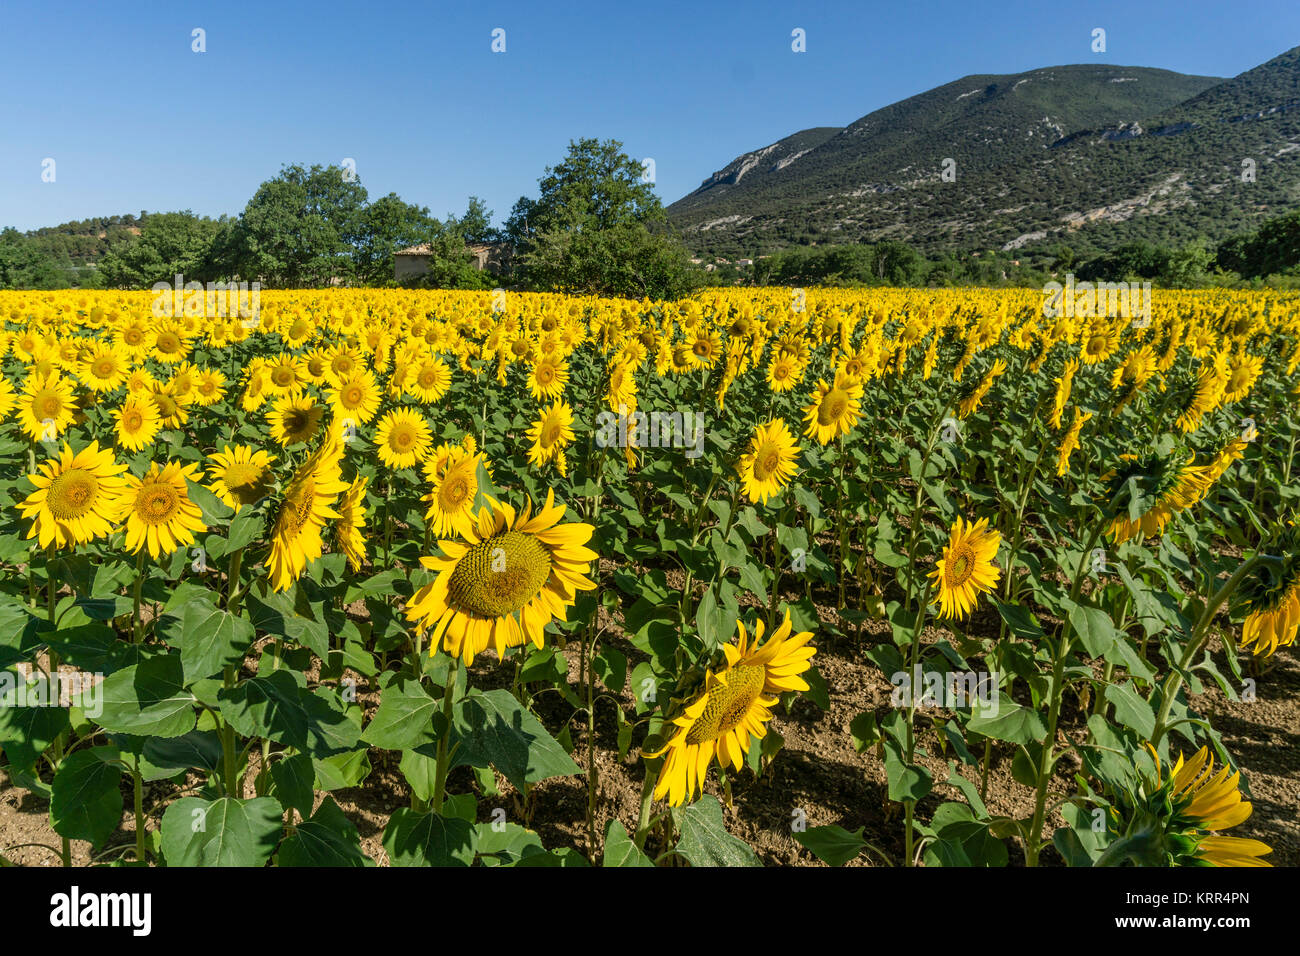 Sunflower field in Rustel, Vaucluse - Stock Image